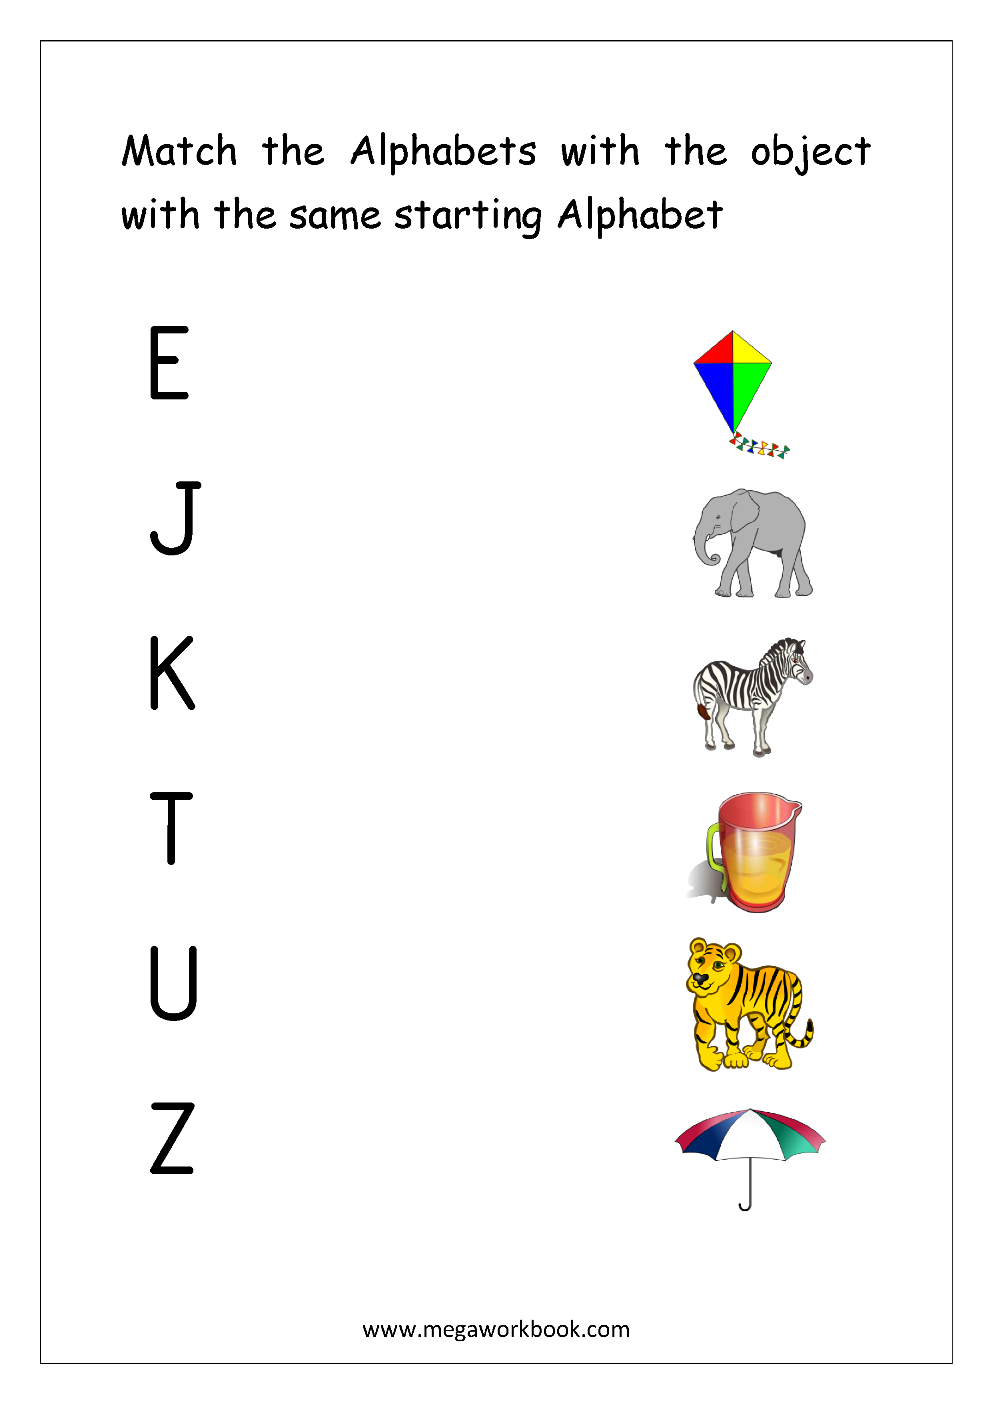 Free English Worksheets - Alphabet Matching - Megaworkbook regarding Letter Matching Worksheets